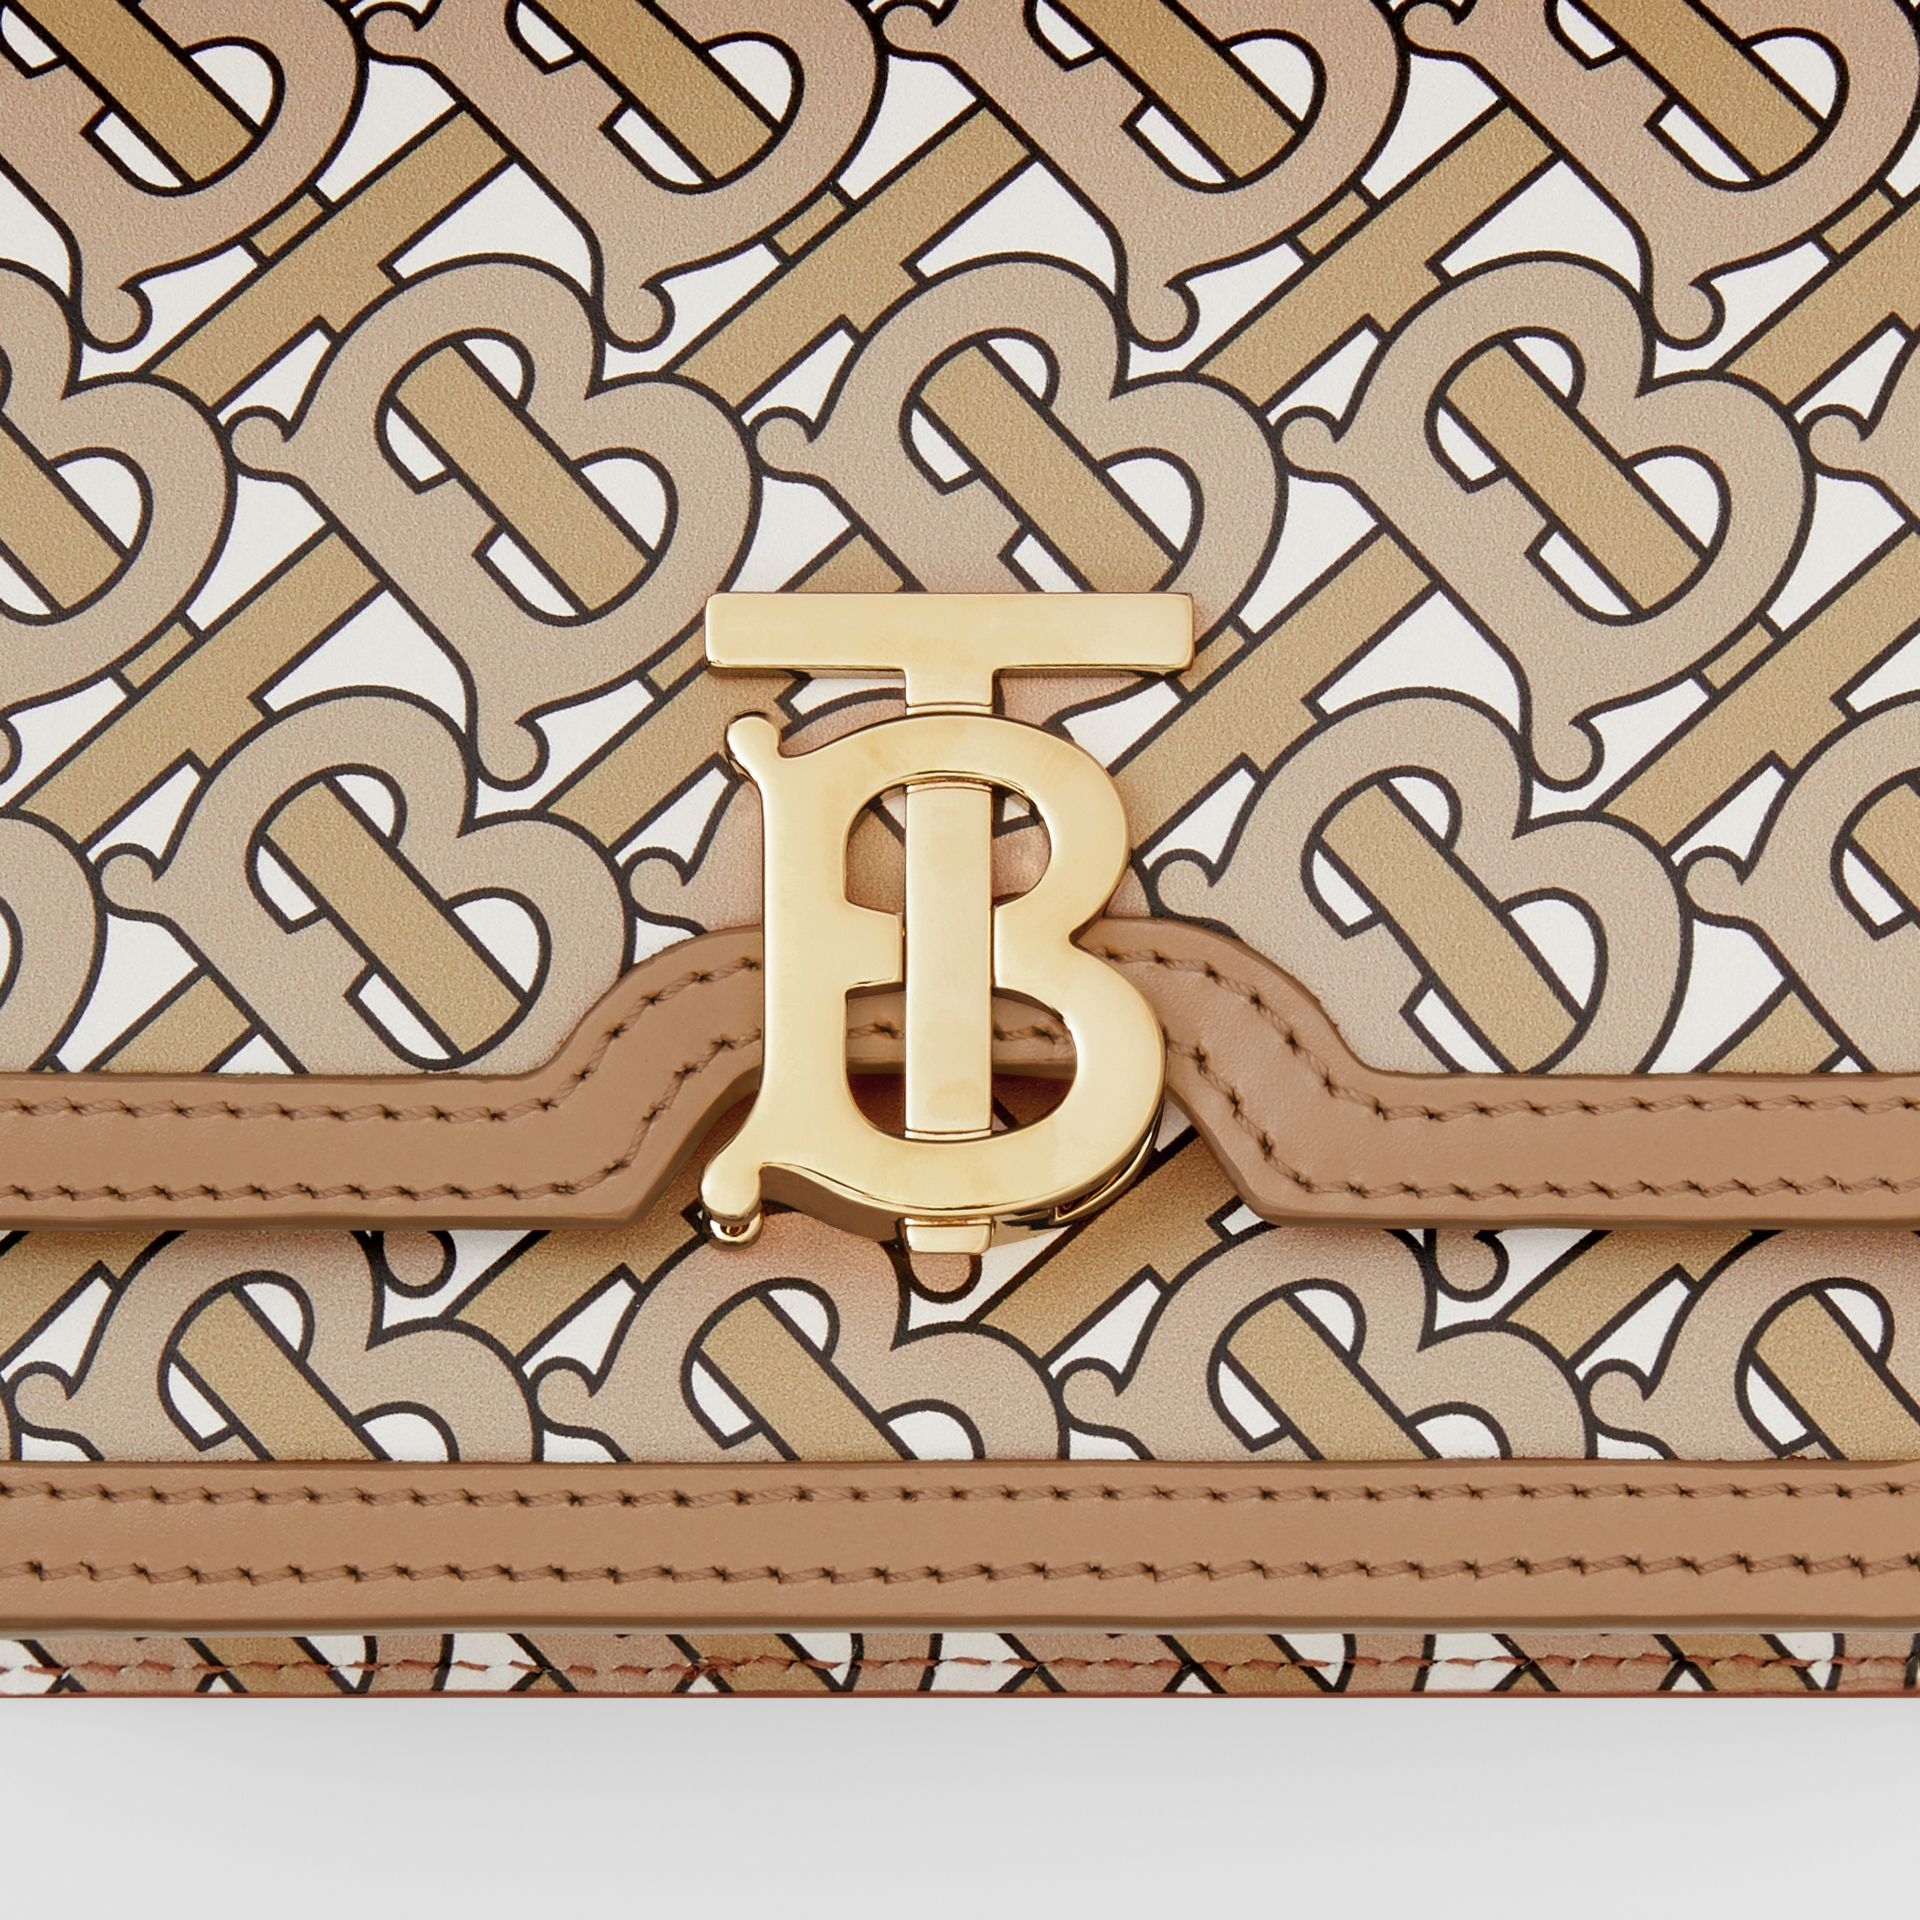 Mini sac TB en cuir Monogram (Beige) - Femme | Burberry - photo de la galerie 1